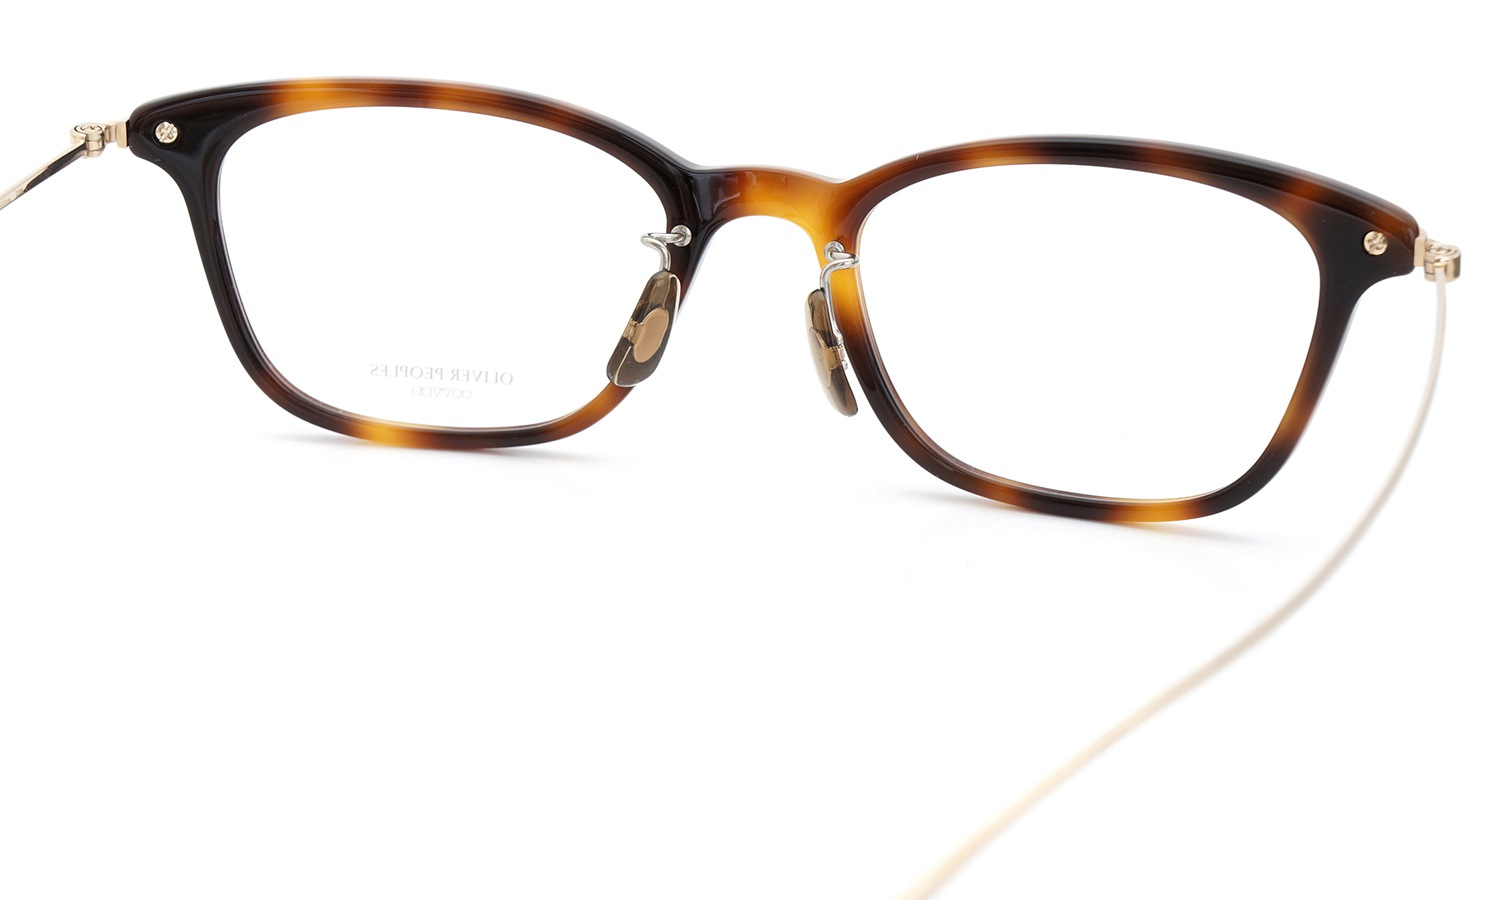 OLIVER PEOPLES メガネ Collina DM 49size